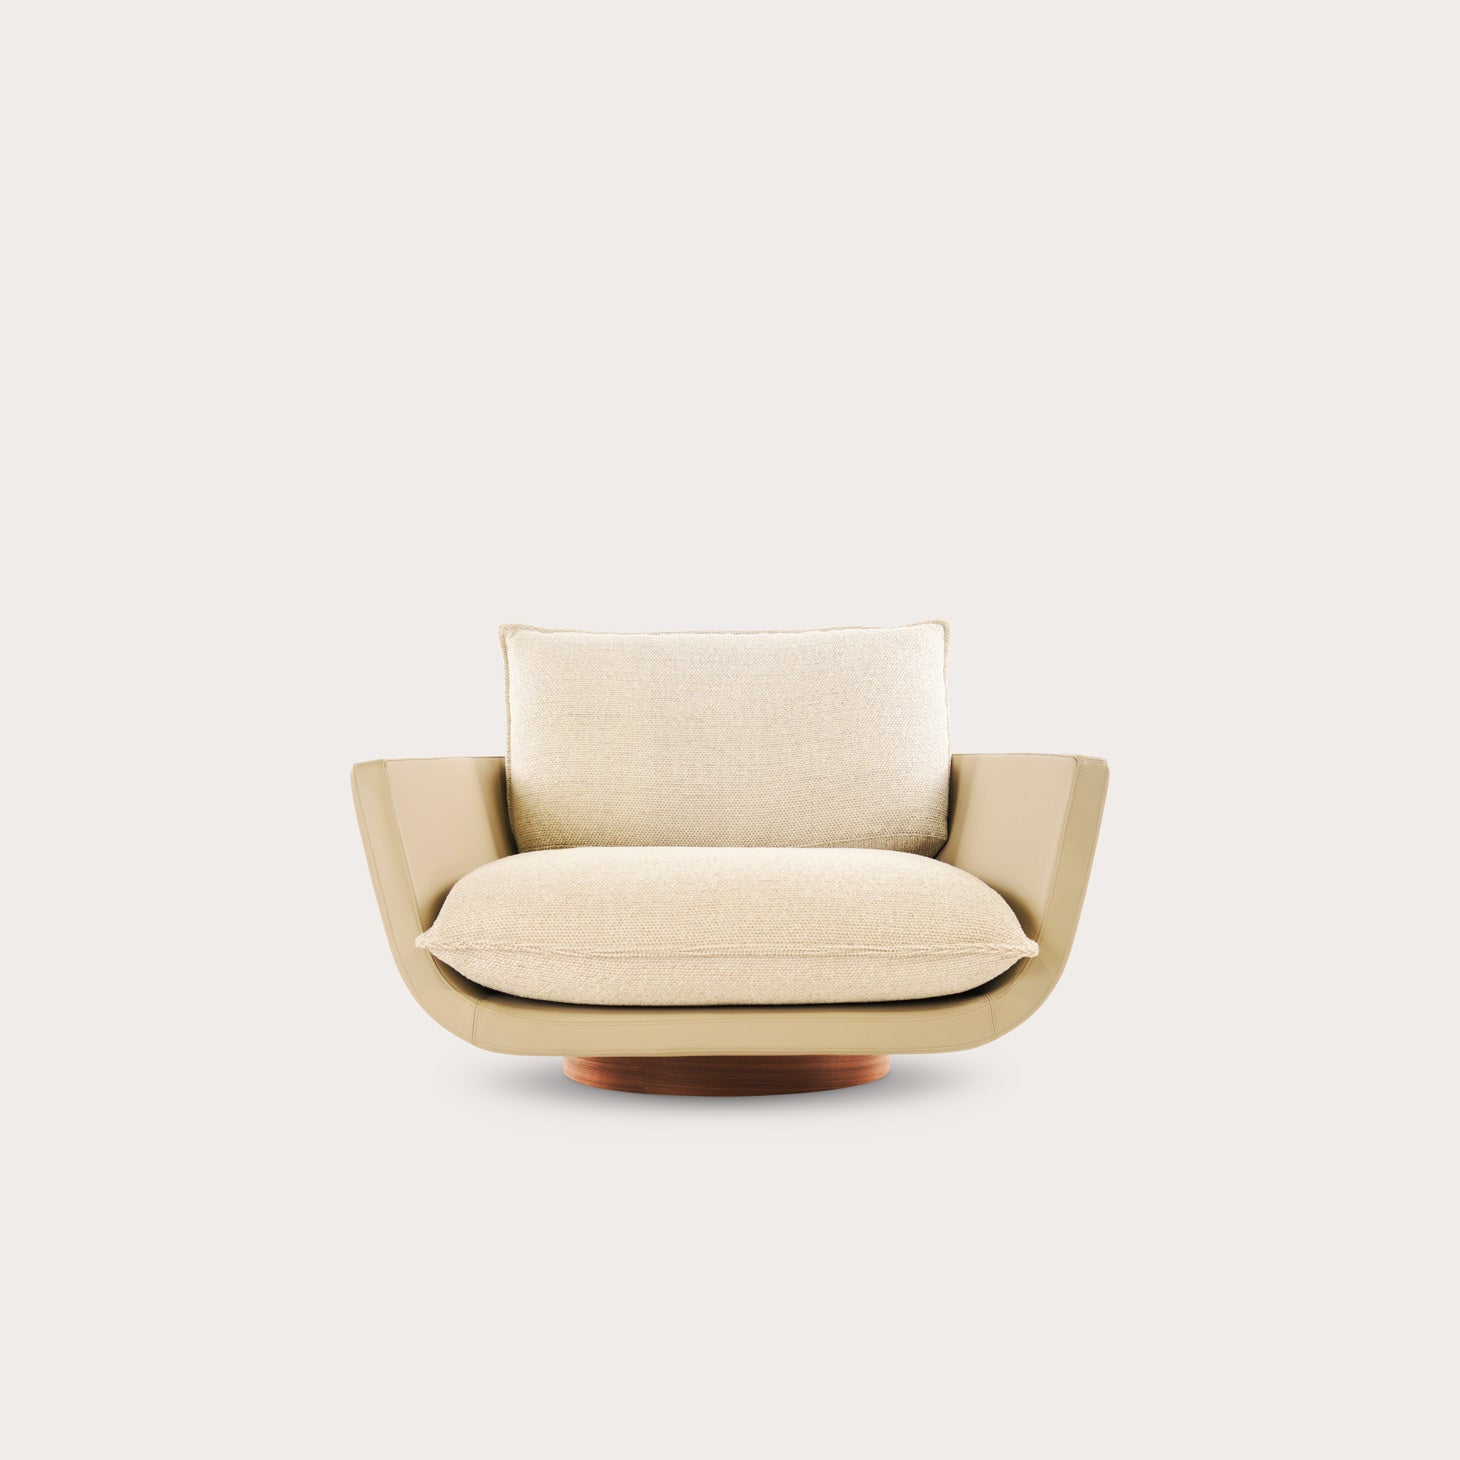 Rua Ipanema Seating Yabu Pushelberg Designer Furniture Sku: 800-240-10054